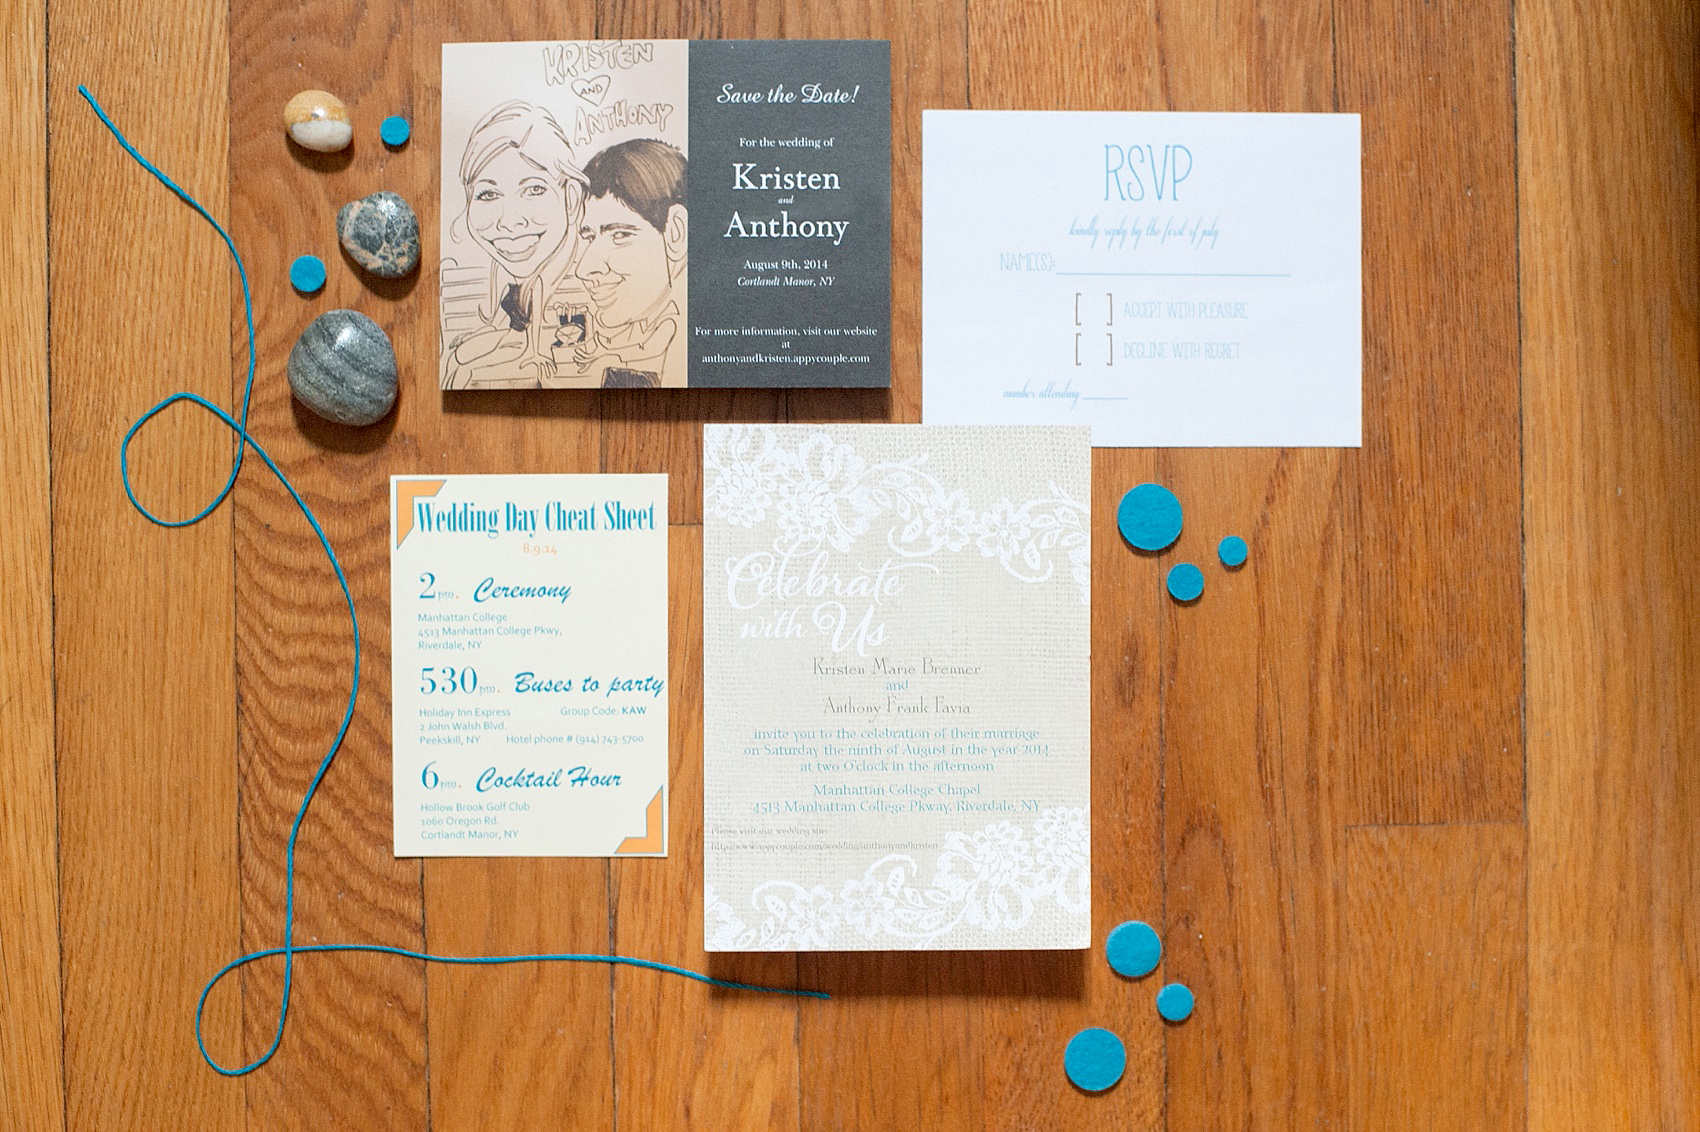 Rustic wedding invitation with caricature of the bride and groom. Photo by Mikkel Paige Photography.